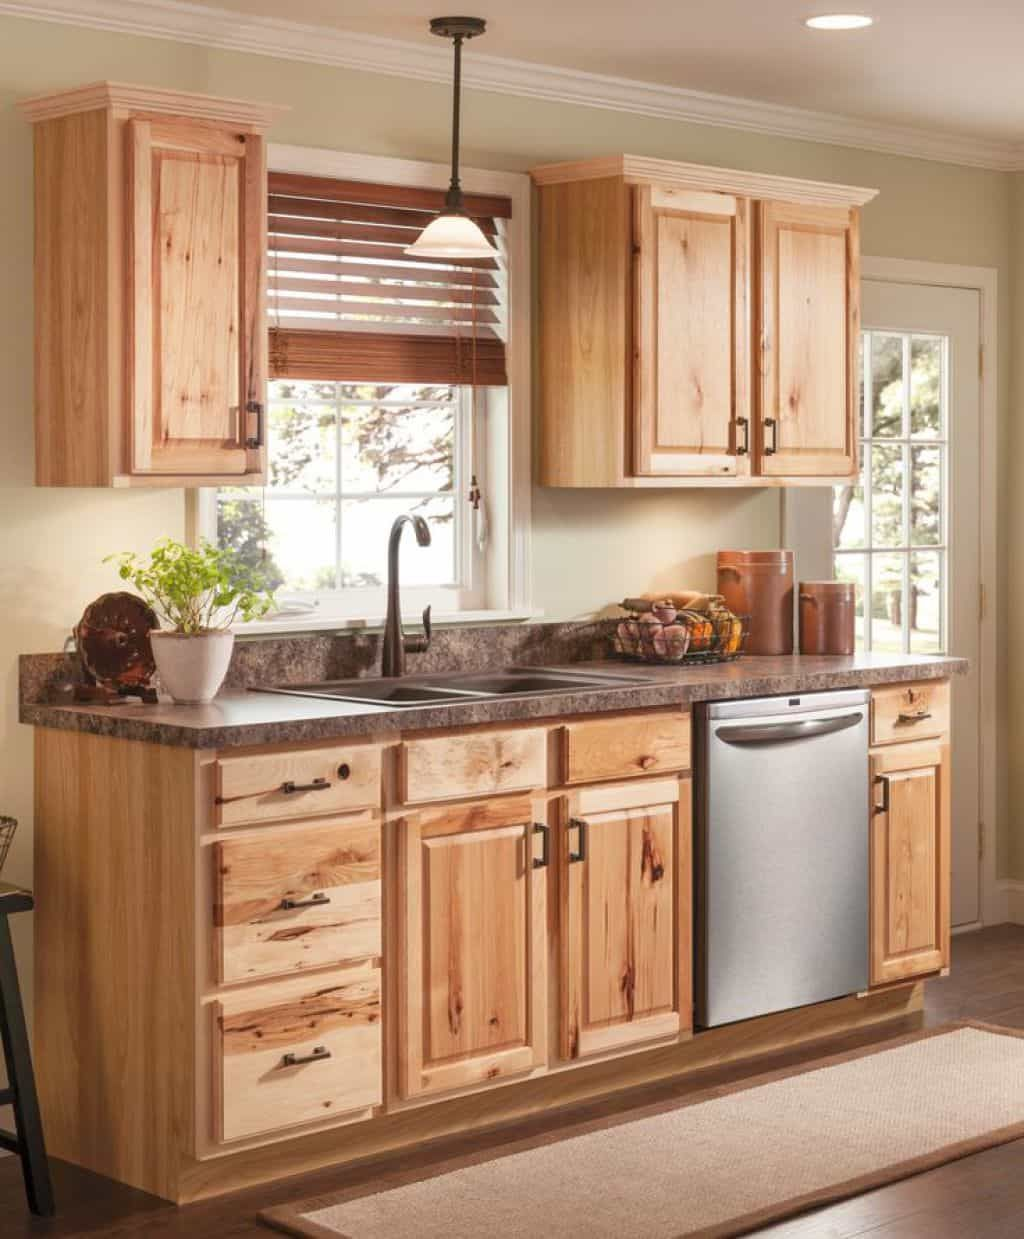 A Kitchen With Sturdy Hickory Cabinets Hickory Kitchen Cabinets Kitchen Cabinet Design New Kitchen Cabinets